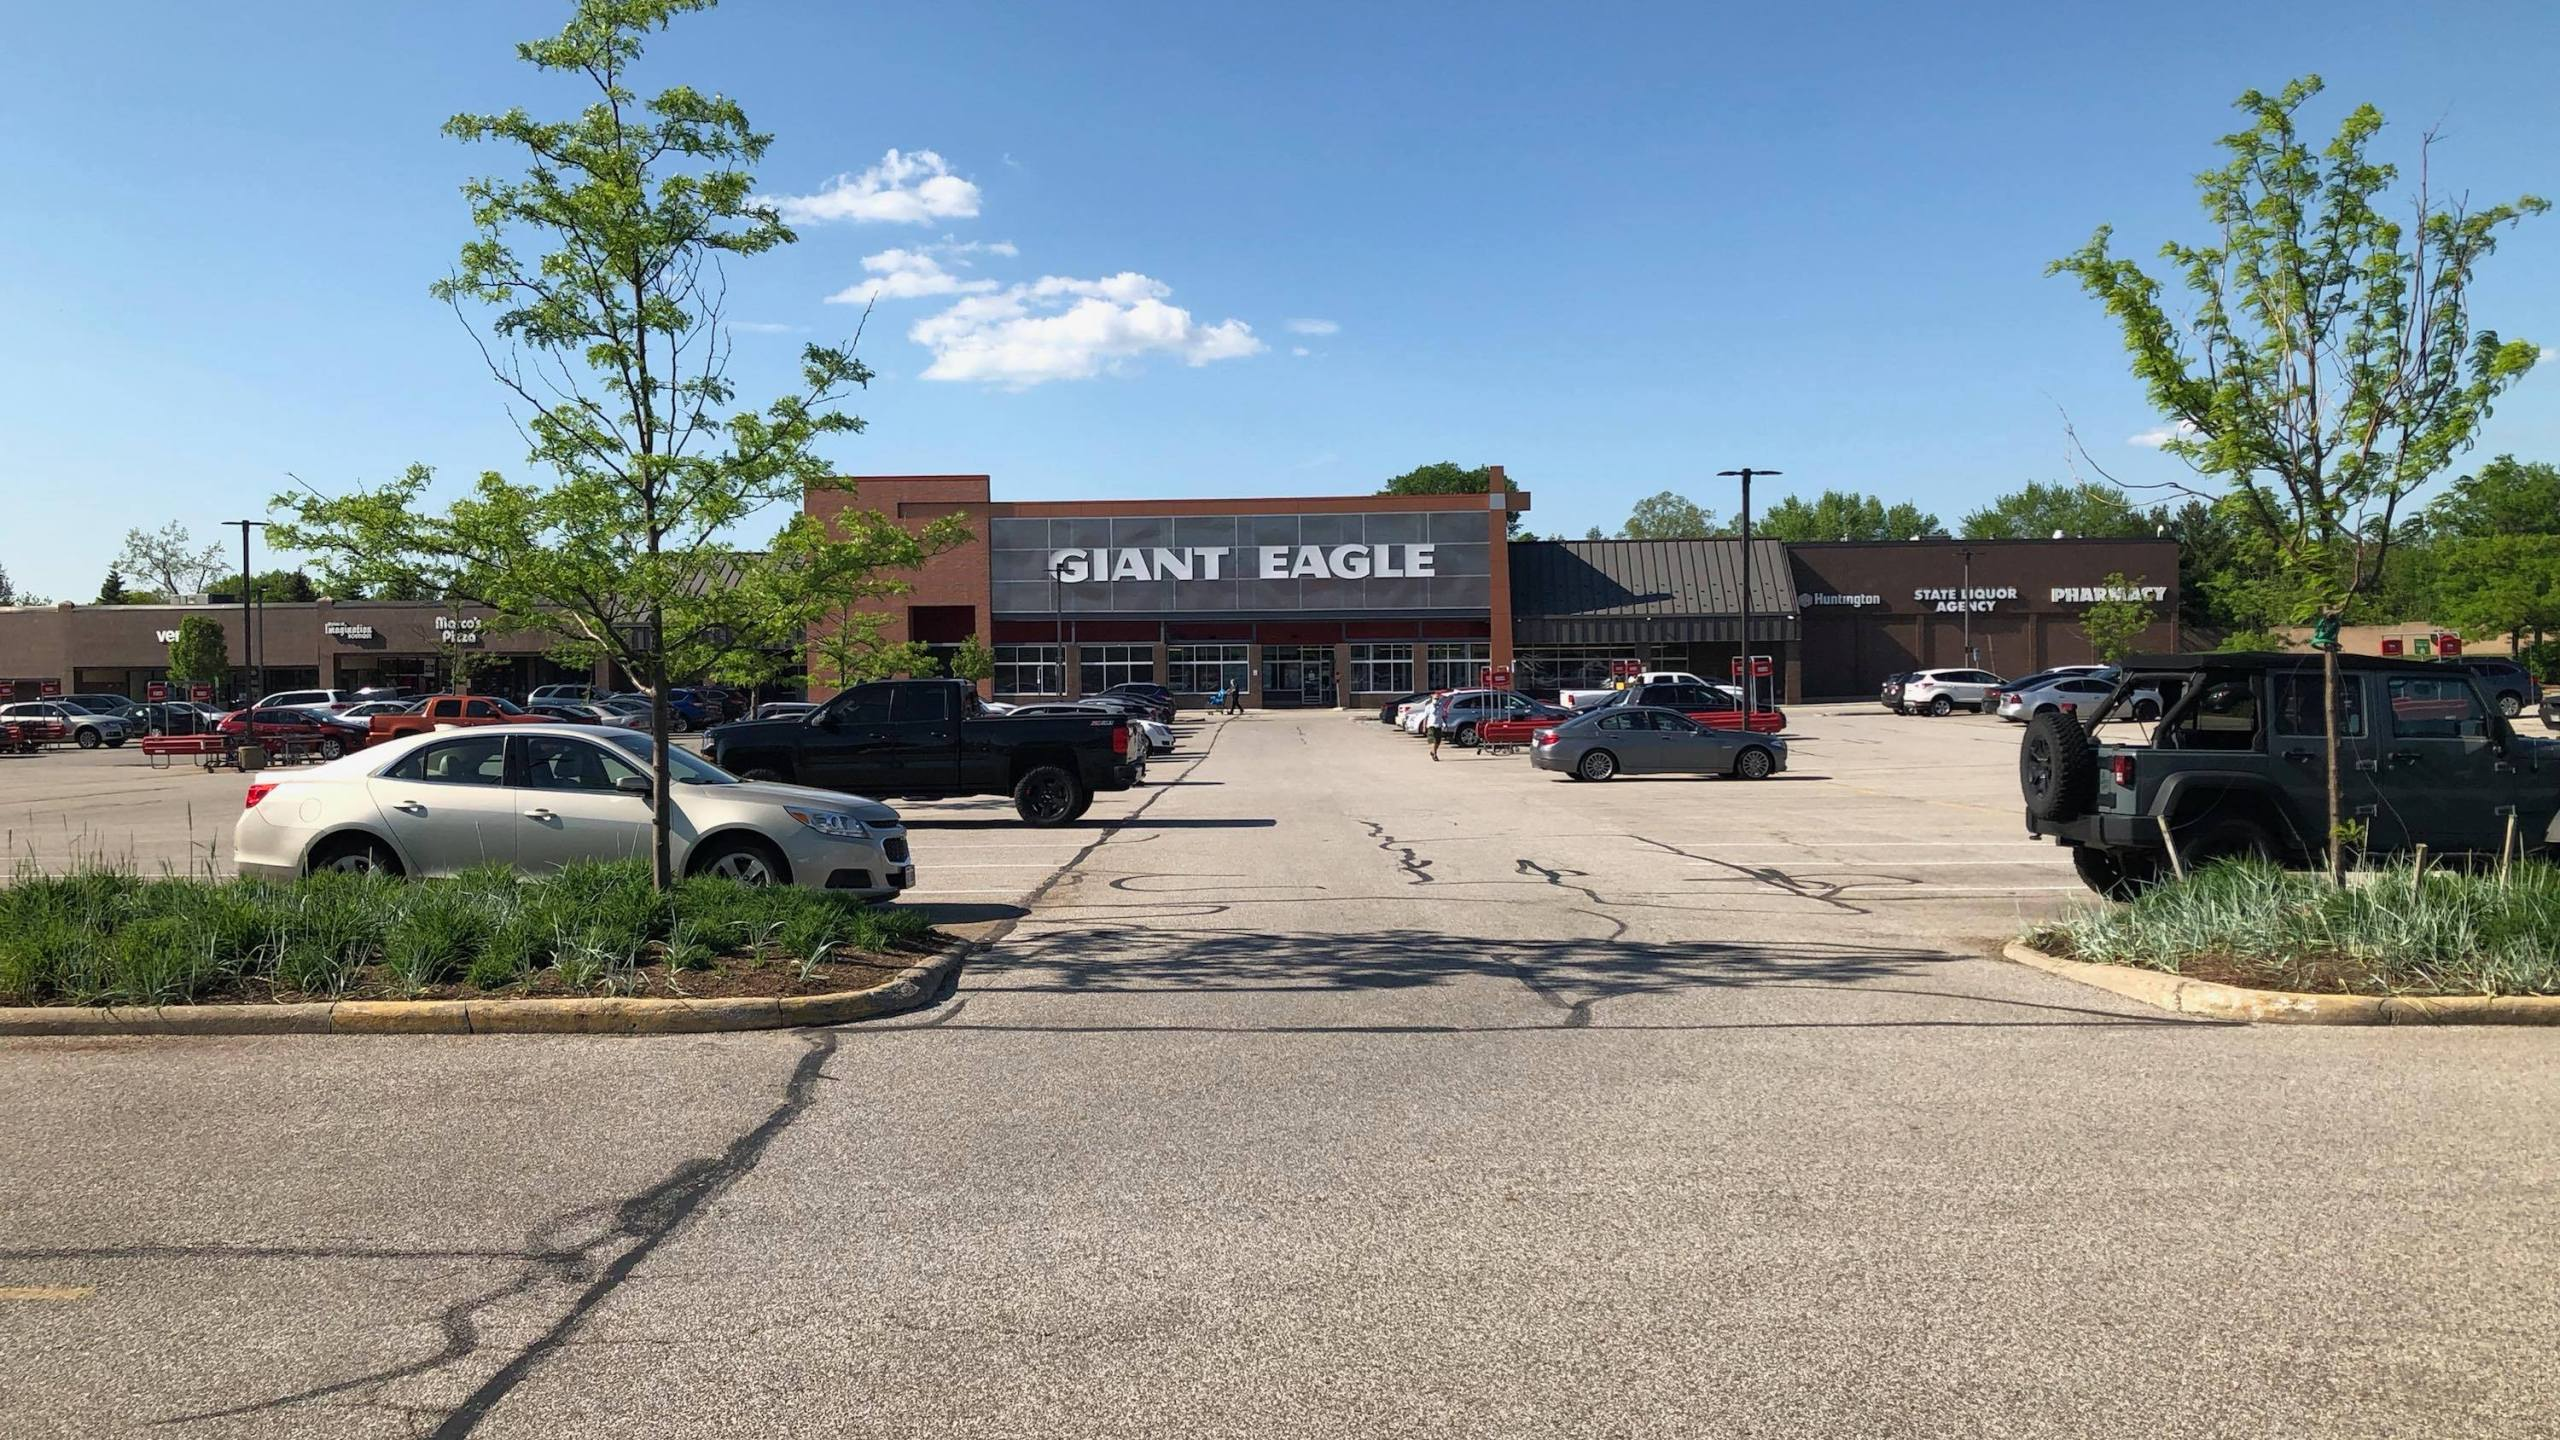 Beachwood Giant Eagle